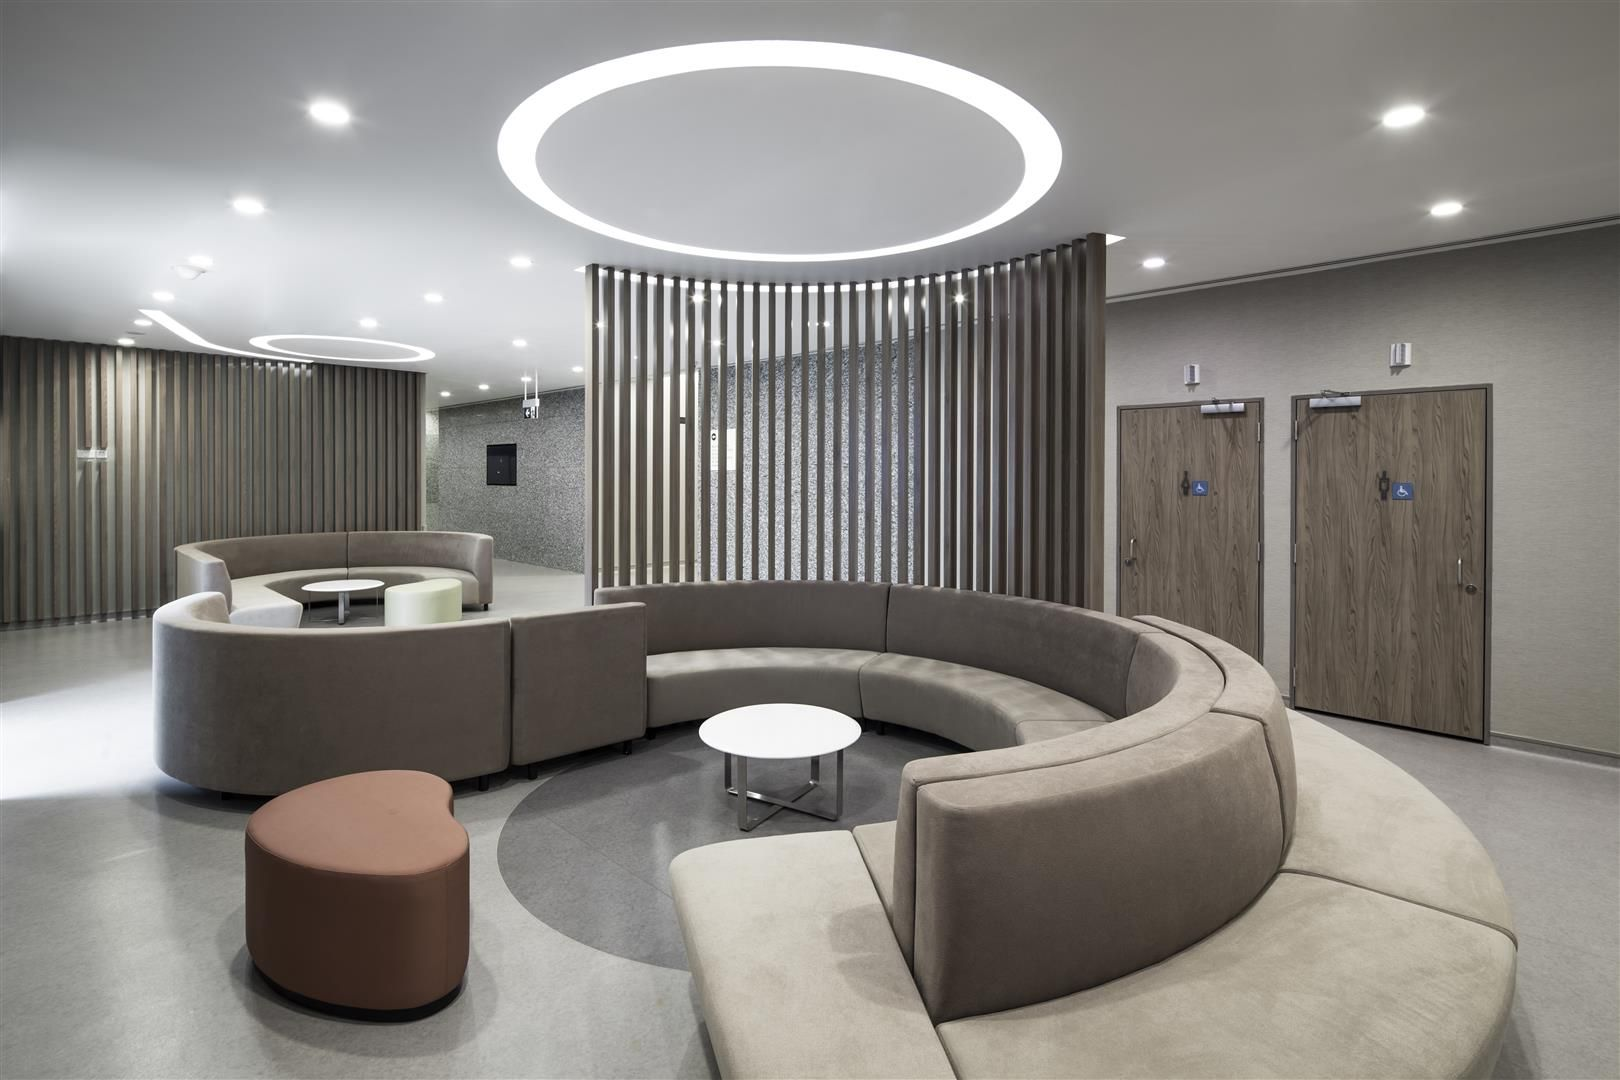 Seating Area At The Farrer Park Hospital Singapore By Dp